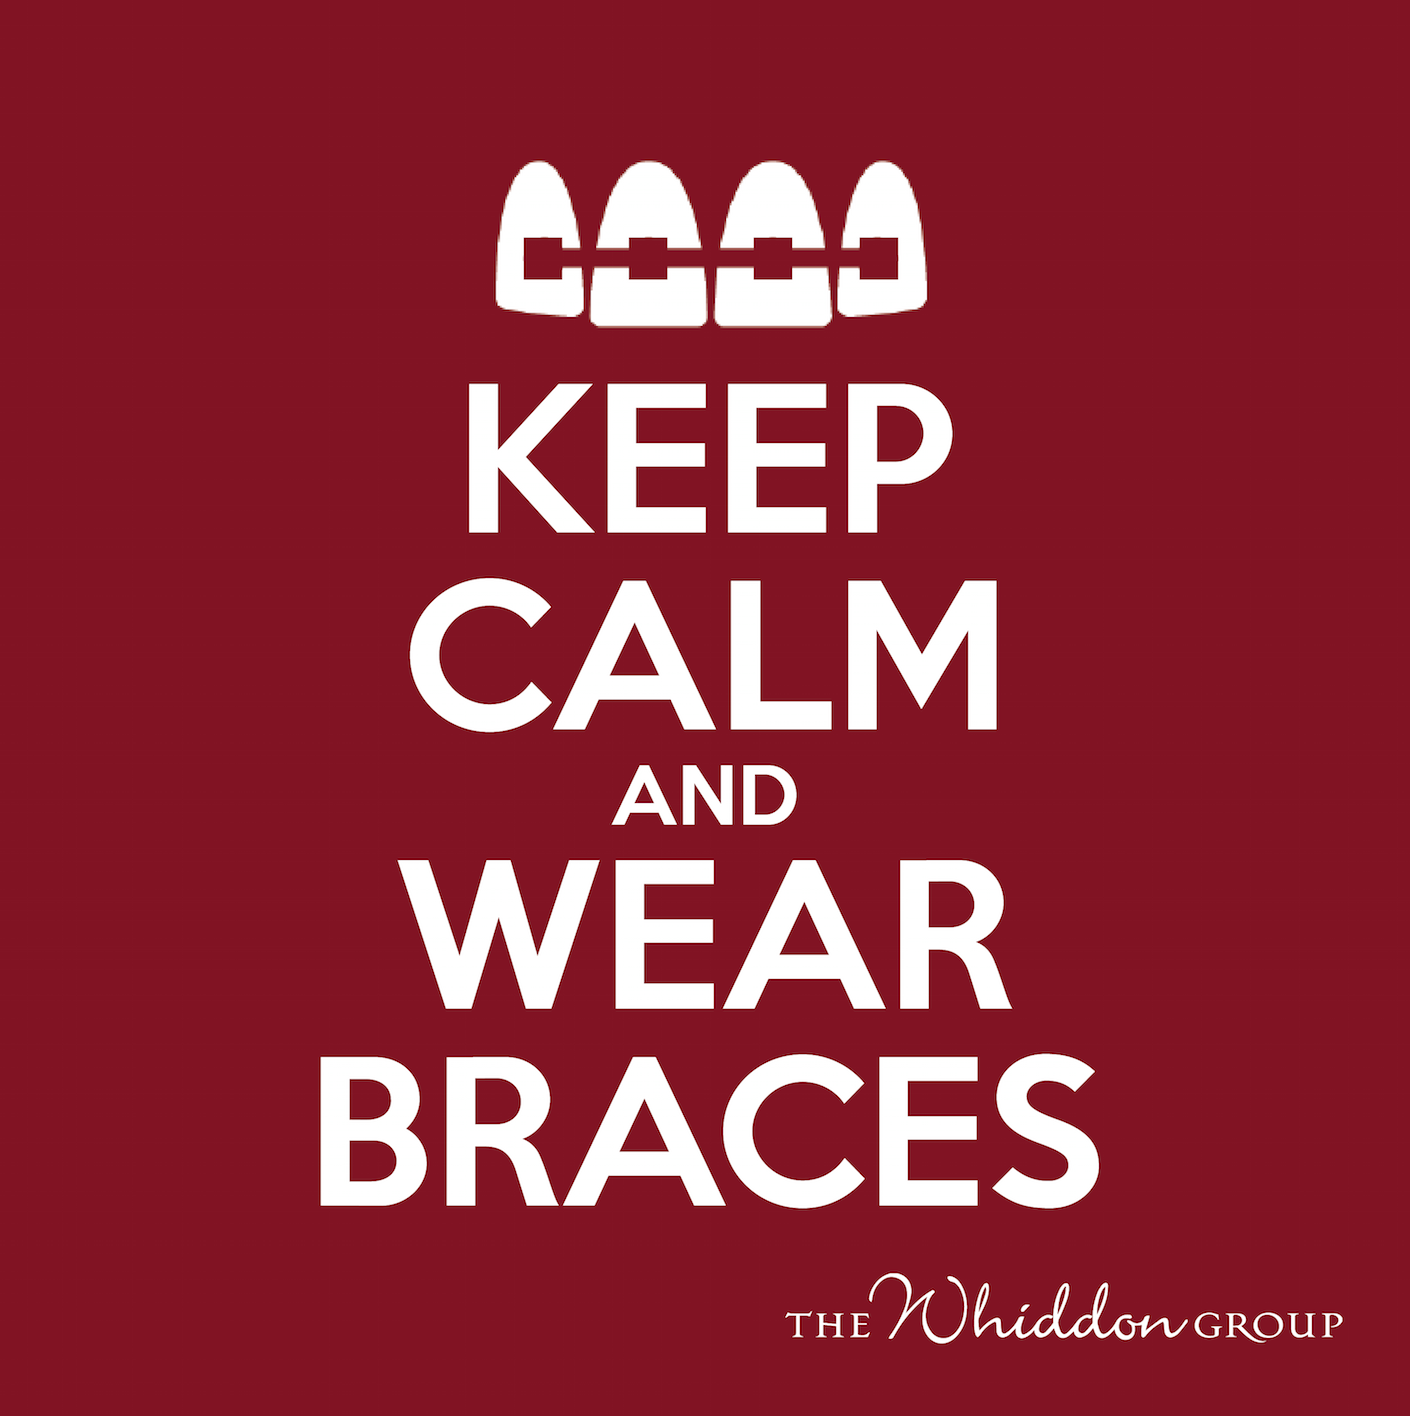 Braces Off Quotes Keep Calm And Wear Braces Orthodontic Marketing Ideas Custom